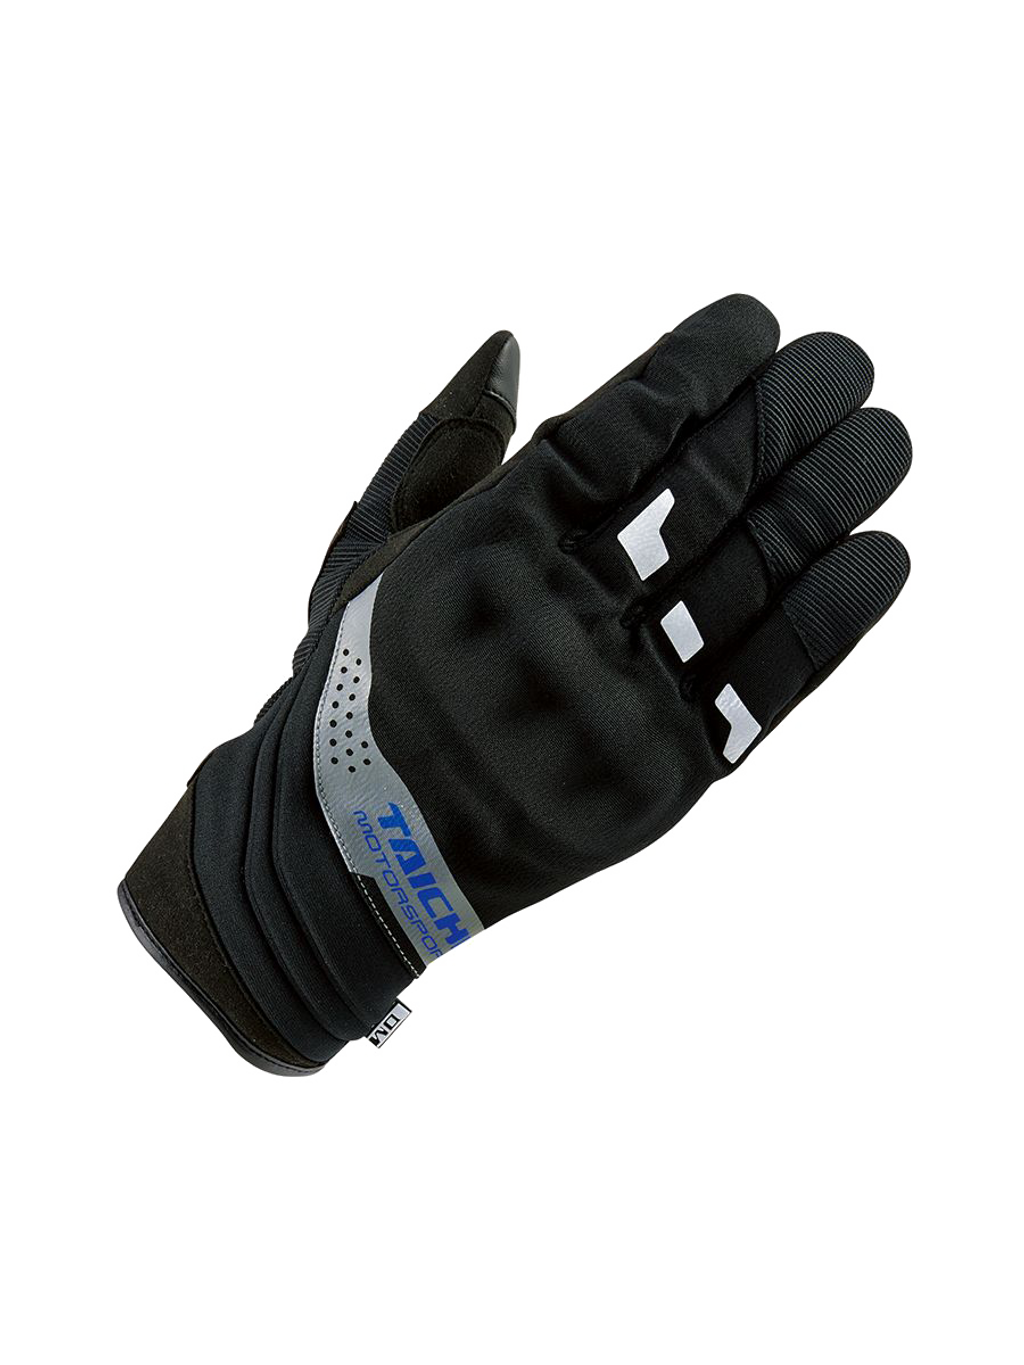 01 RS TAICHI RST608 STEALTH WINTER GLOVE black blue.png